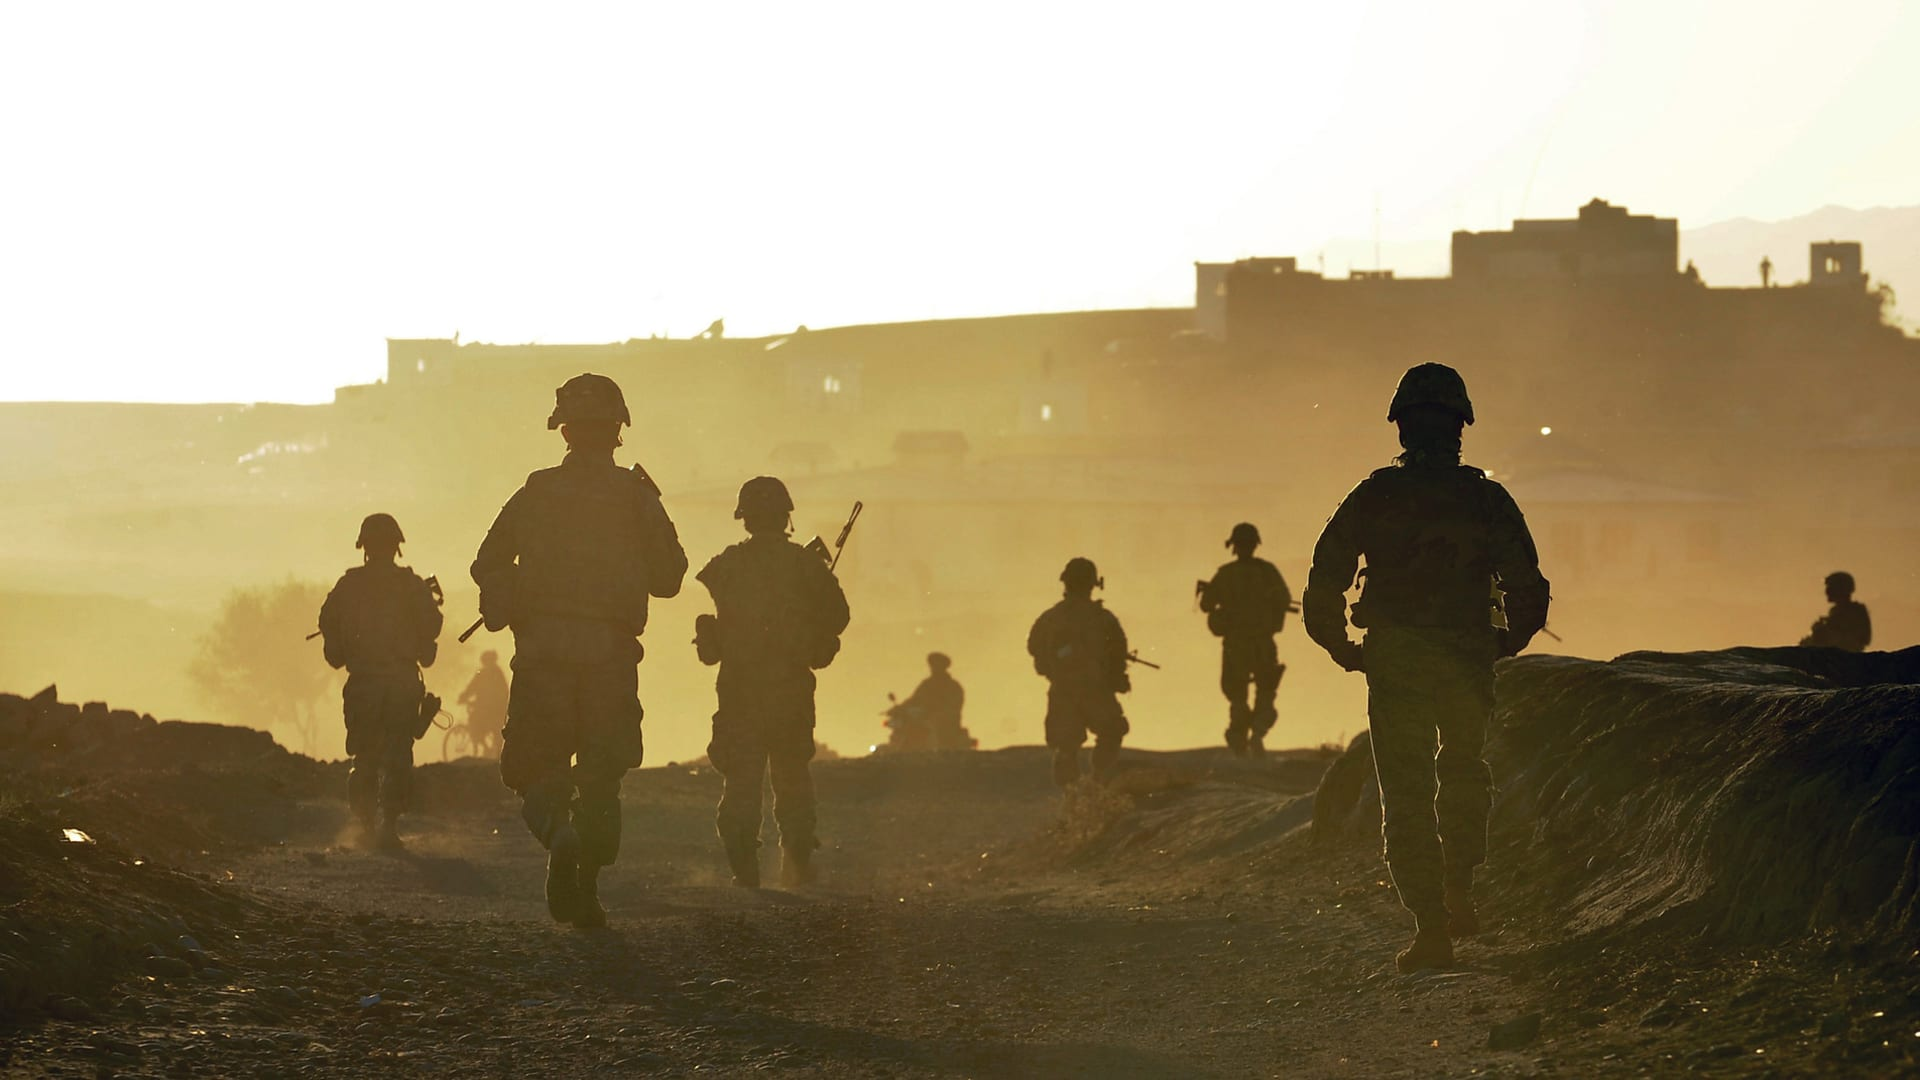 U.S. Soldiers and Airmen from Provincial Reconstruction Team Zabul return to base after a quality assurance, quality control patrol near the city of Qalat, Zabul province, Afghanistan, Nov. 1, 2010.